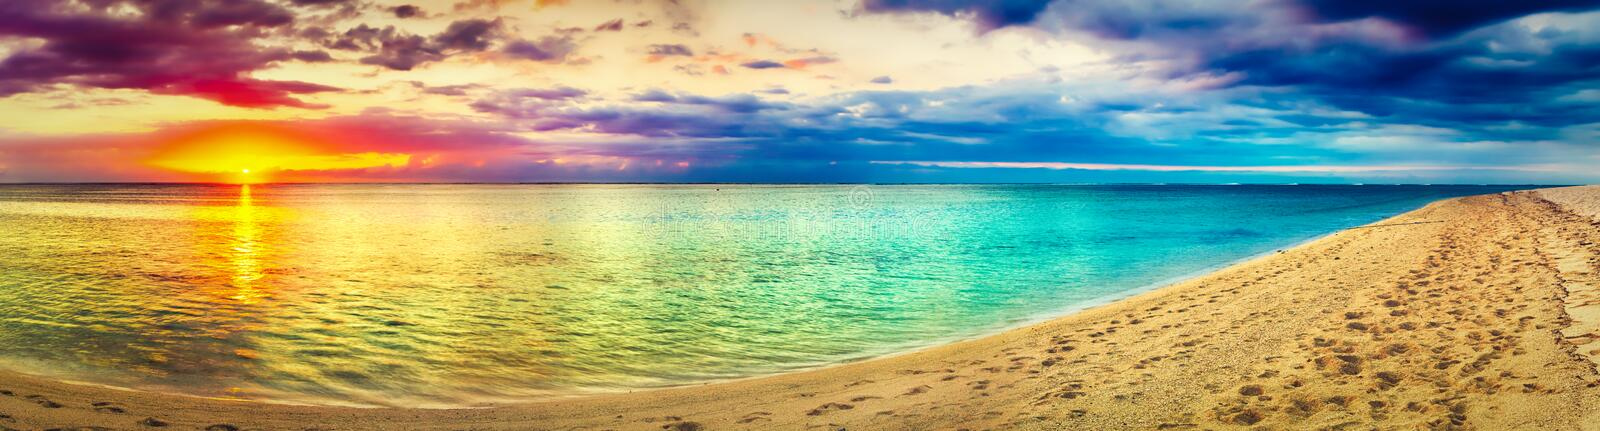 Seaview at sunset. Amazing landscape. Beautiful beach panorama royalty free stock photo